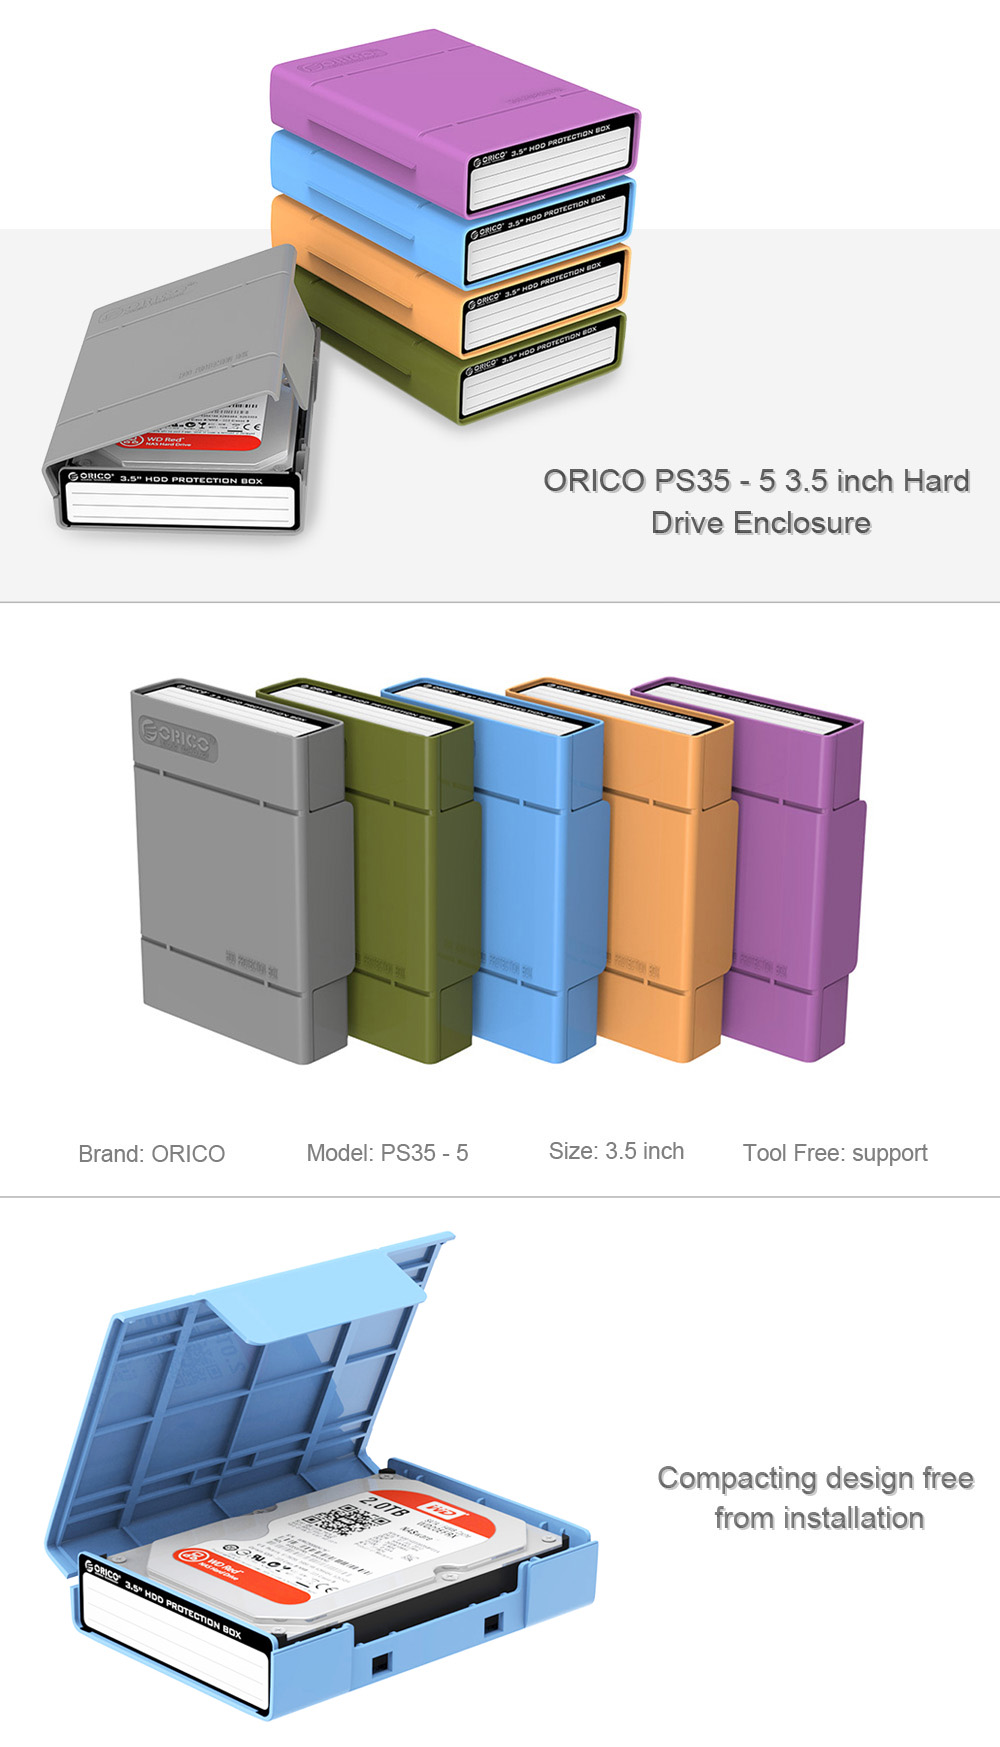 ORICO PS35 - 5 3.5 inch Hard Drive Enclosure Tool Free Installation 5PCS